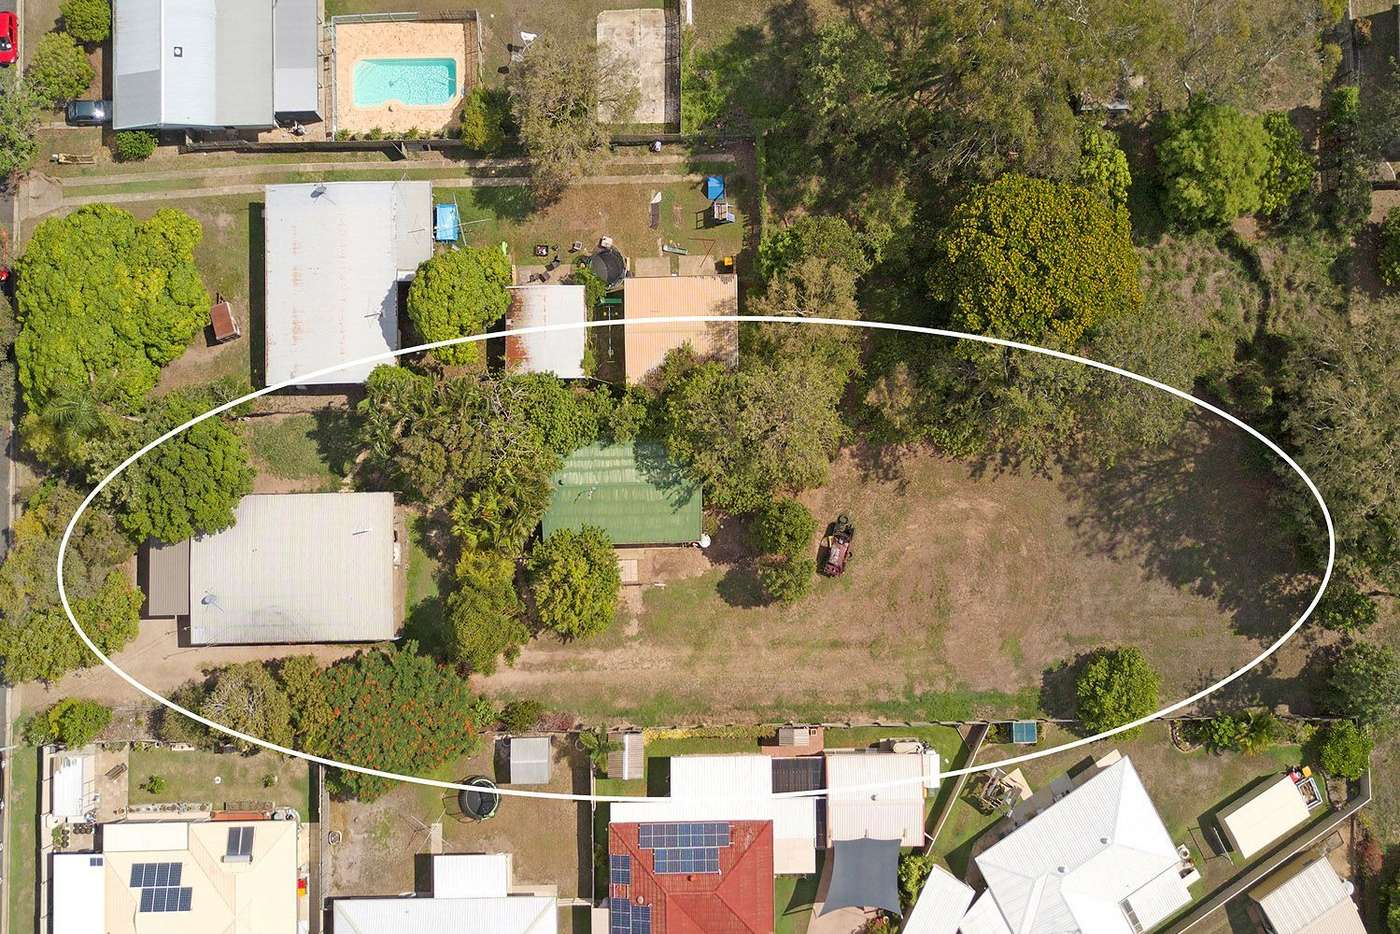 Main view of Homely house listing, 36 Neils Street, Pialba QLD 4655